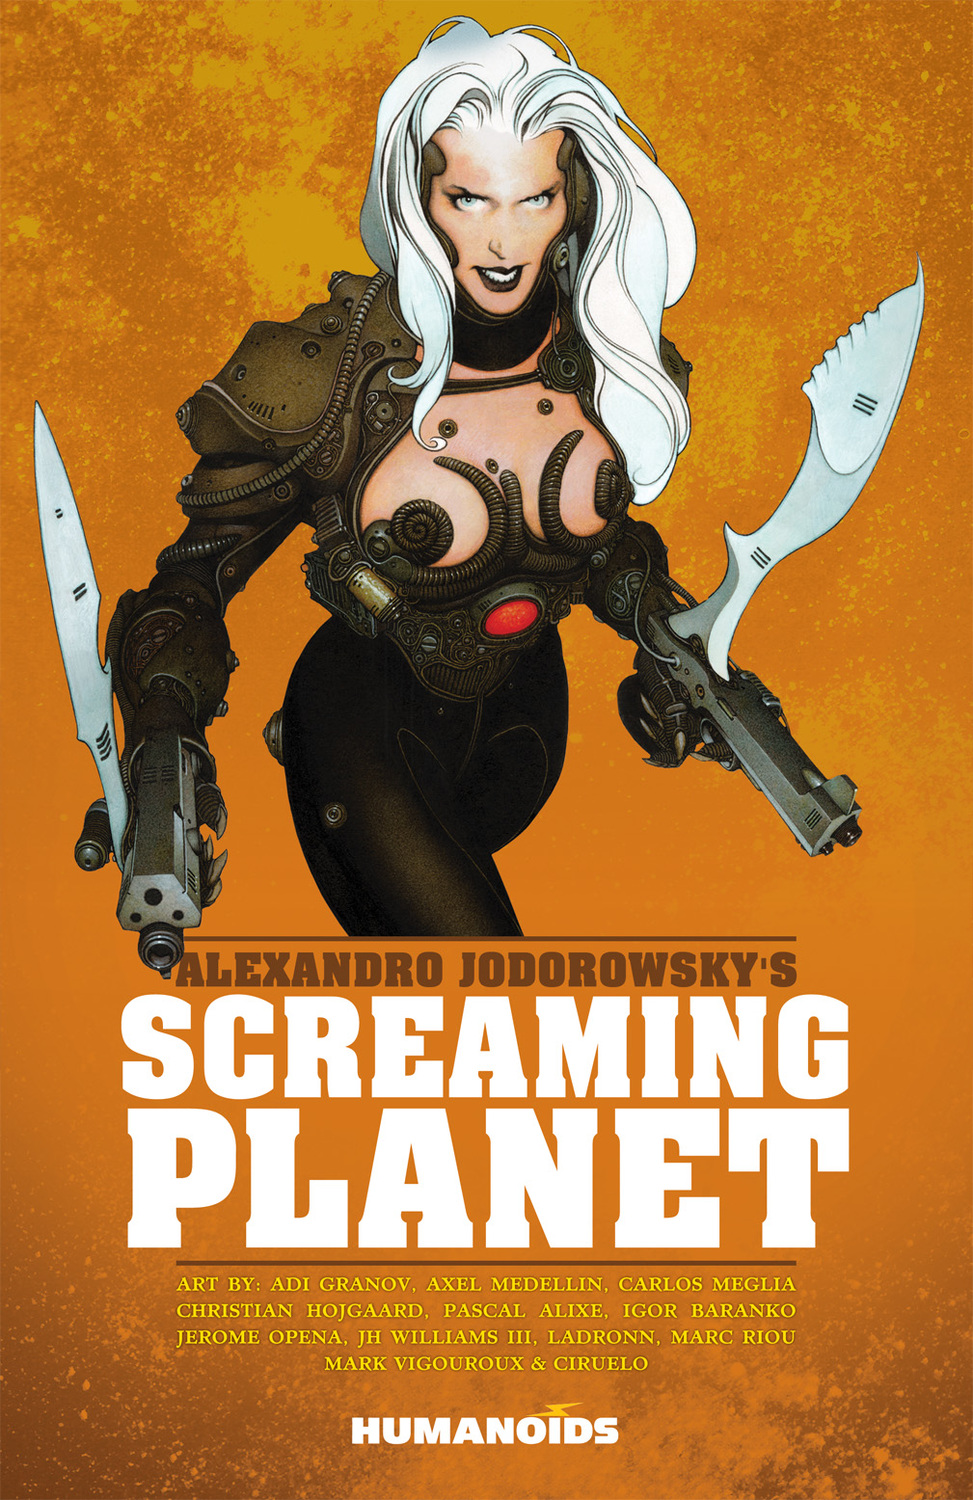 Jodorowsky's Screaming Planet michael burns digital sci fi art